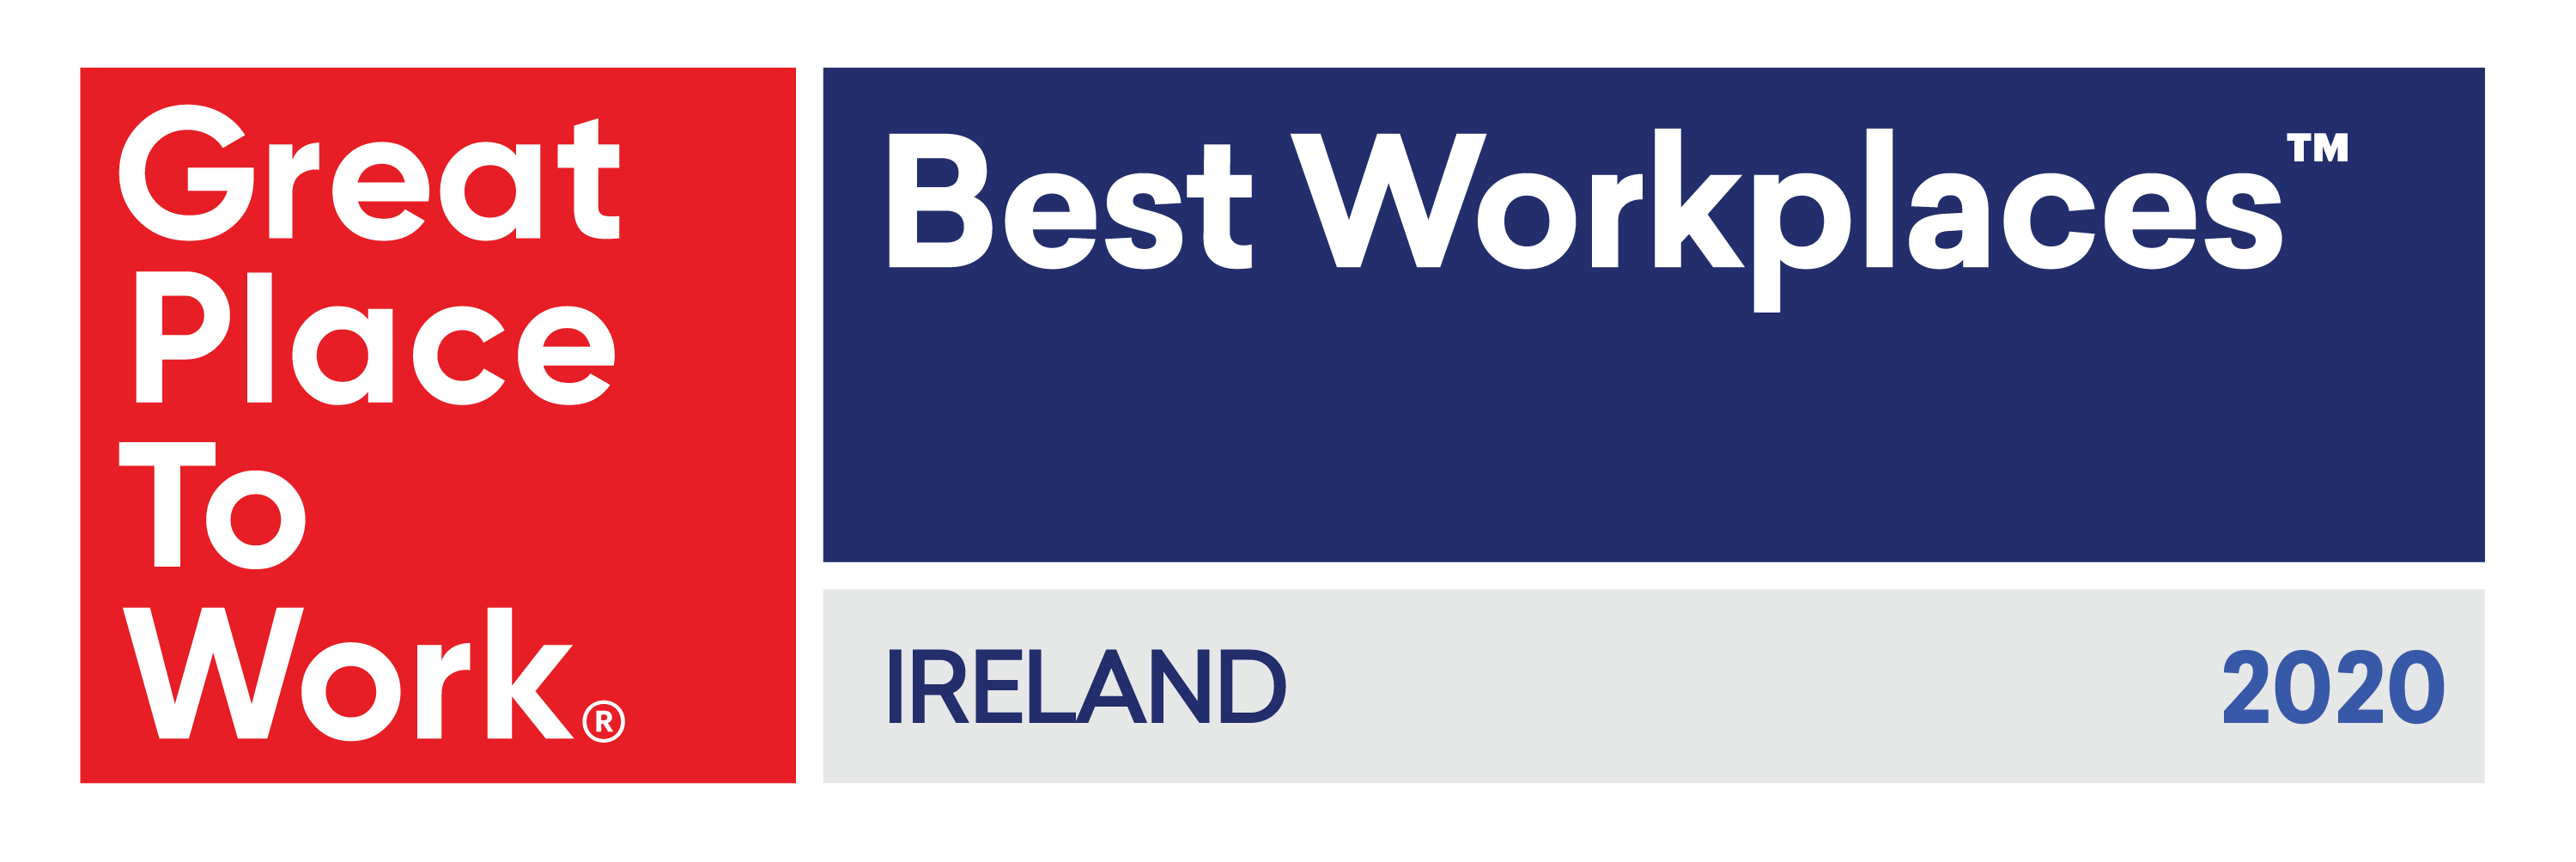 Great Place to Work Logo Osborne Winners